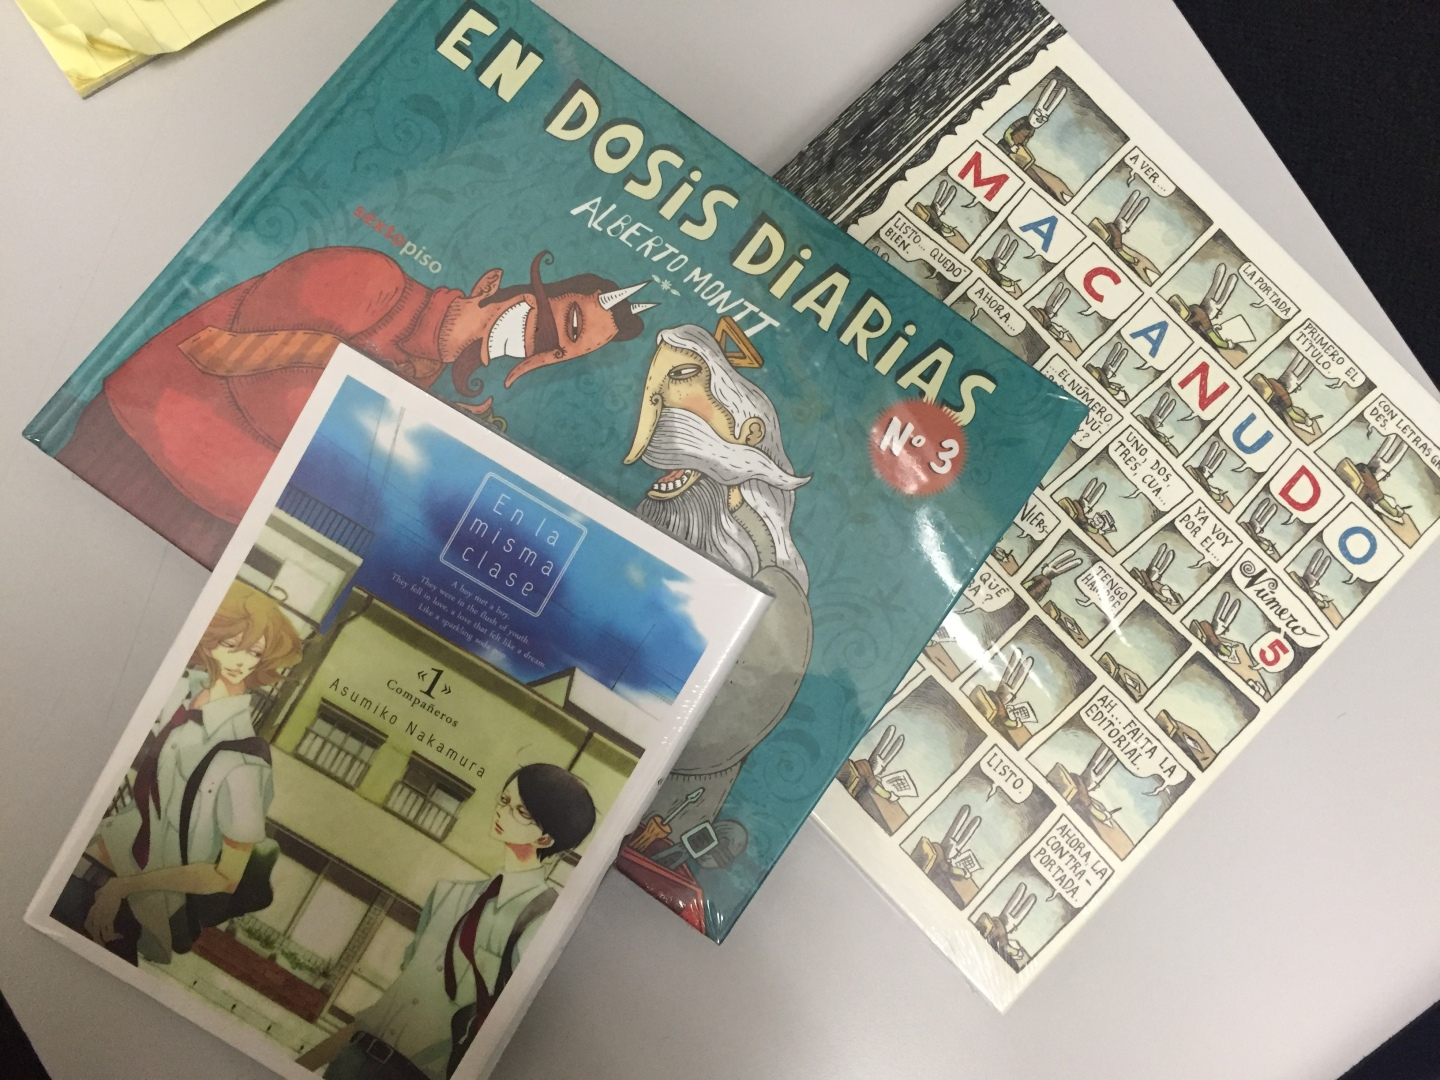 New in my bookshelf: De ilustradores, mangas y monos